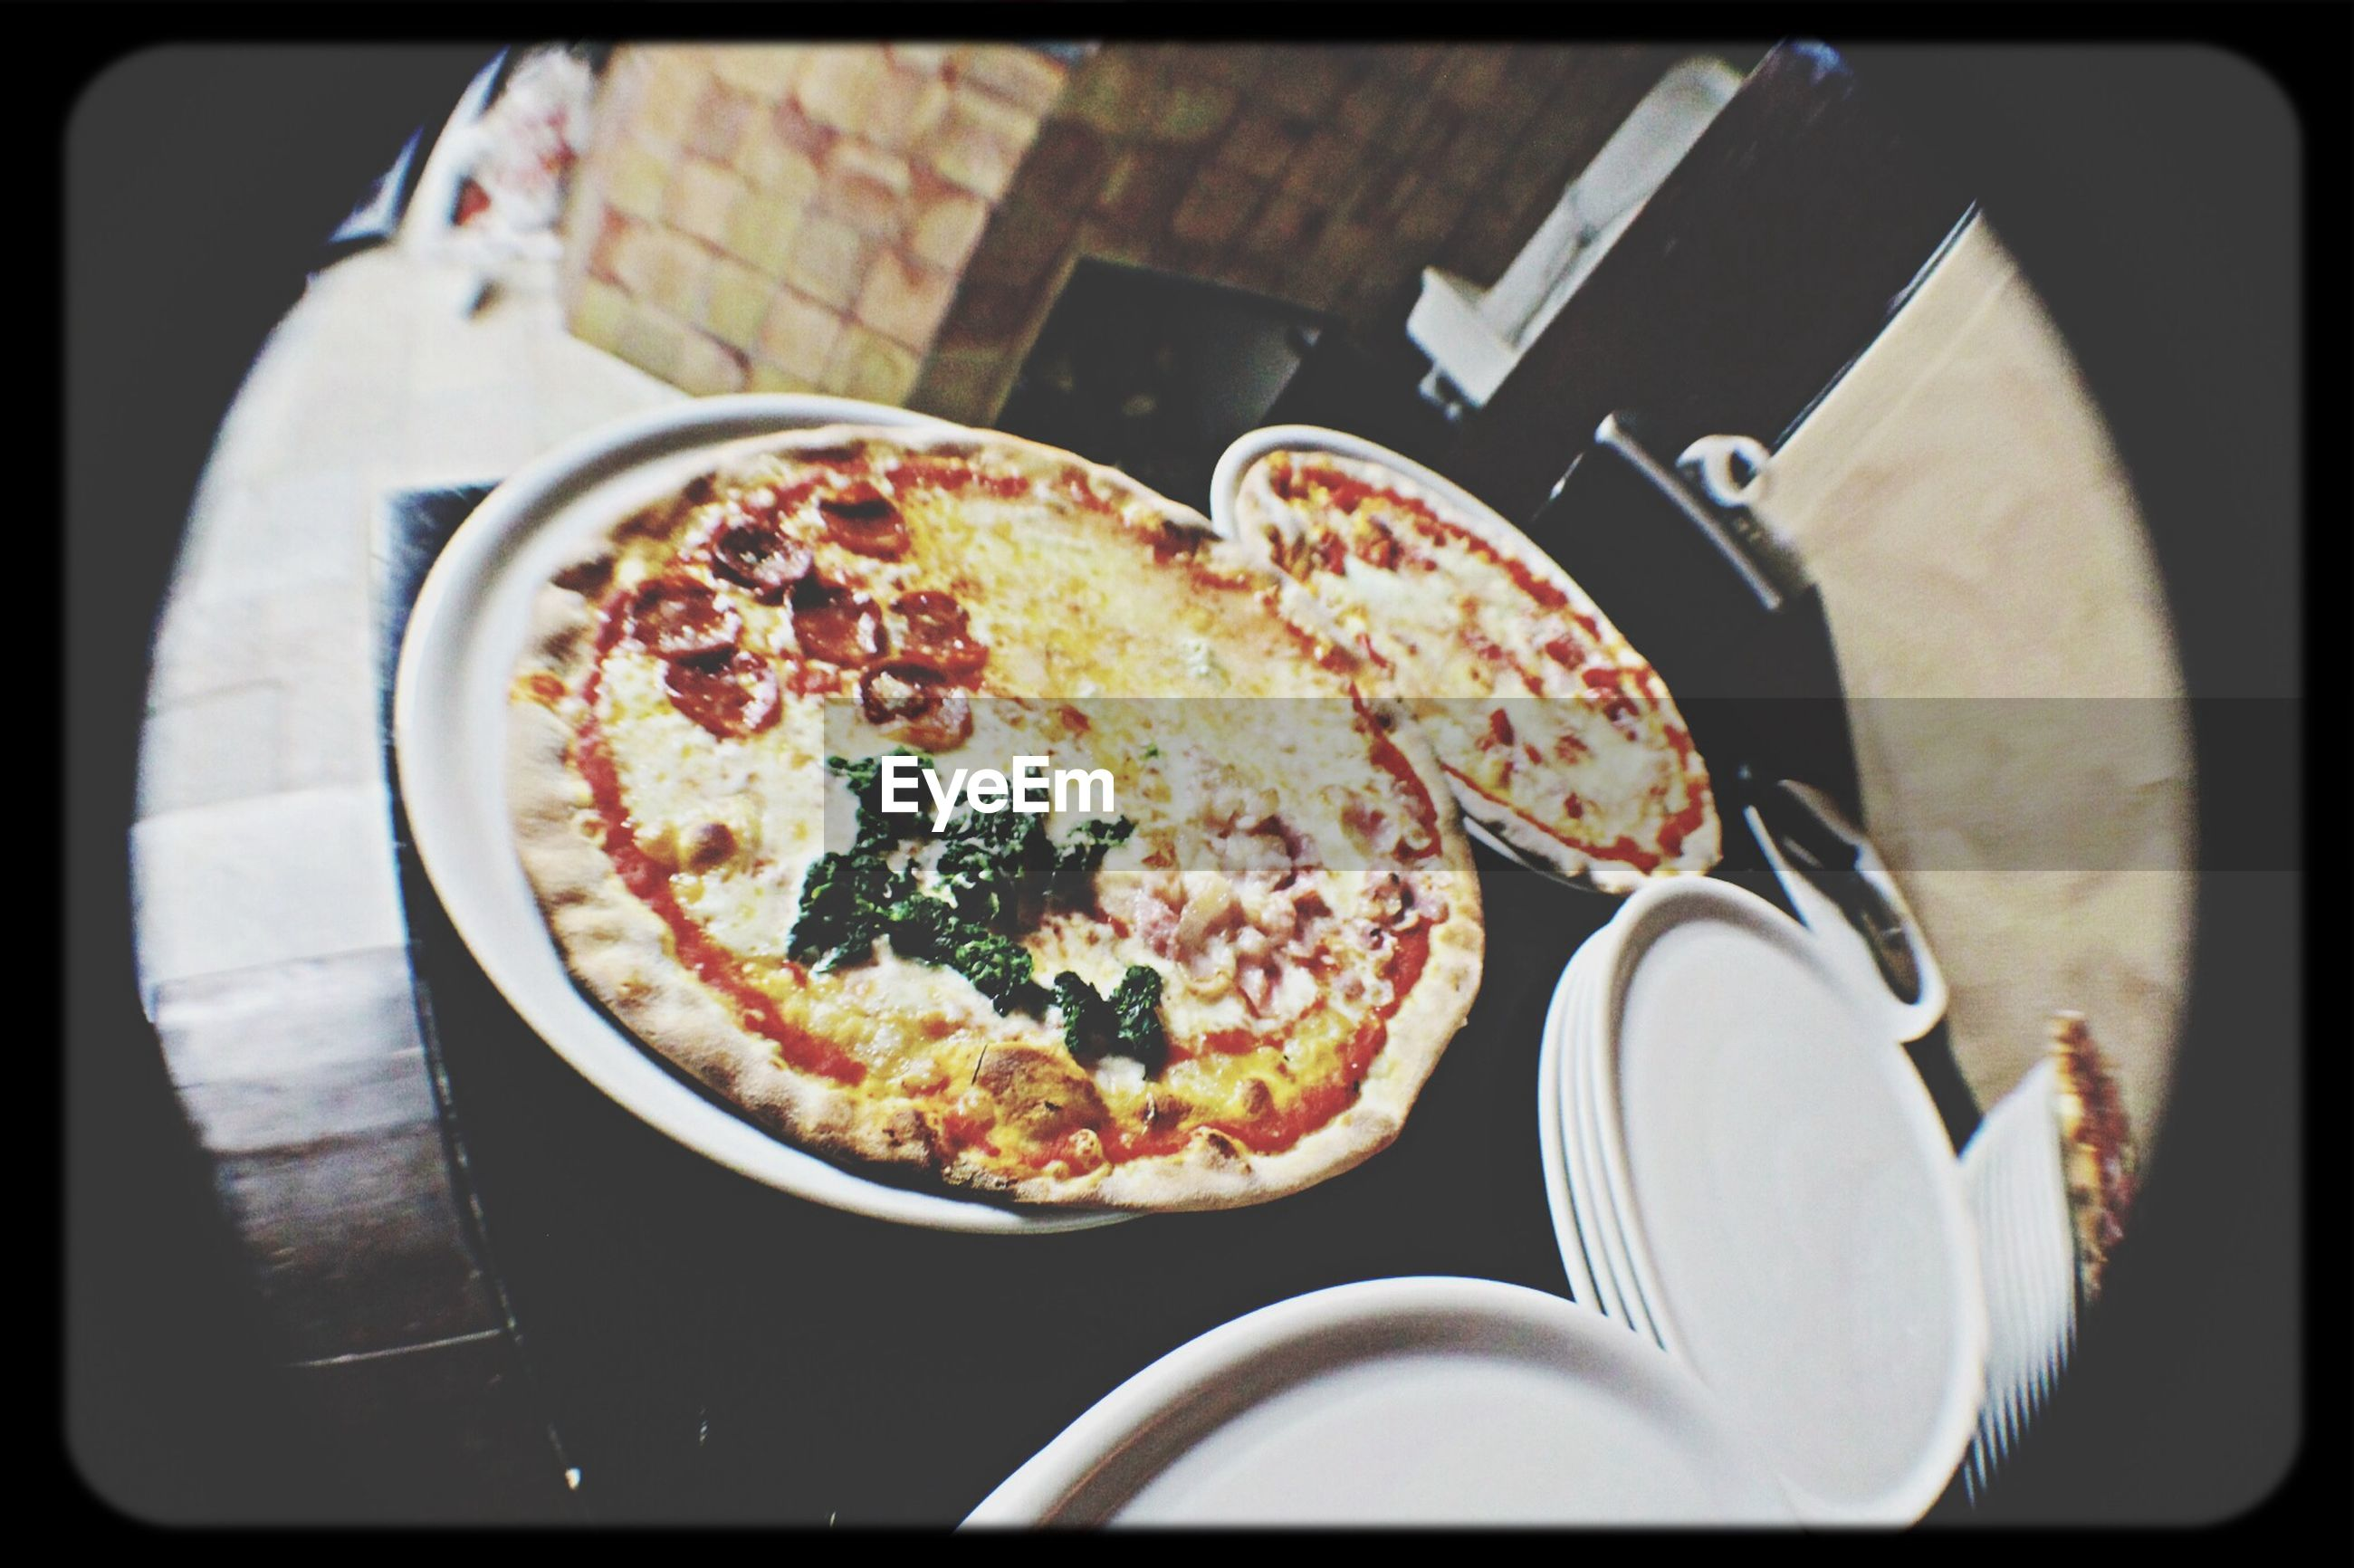 transfer print, food and drink, auto post production filter, food, indoors, high angle view, freshness, plate, table, still life, close-up, bowl, ready-to-eat, healthy eating, fork, spoon, directly above, no people, elevated view, meal